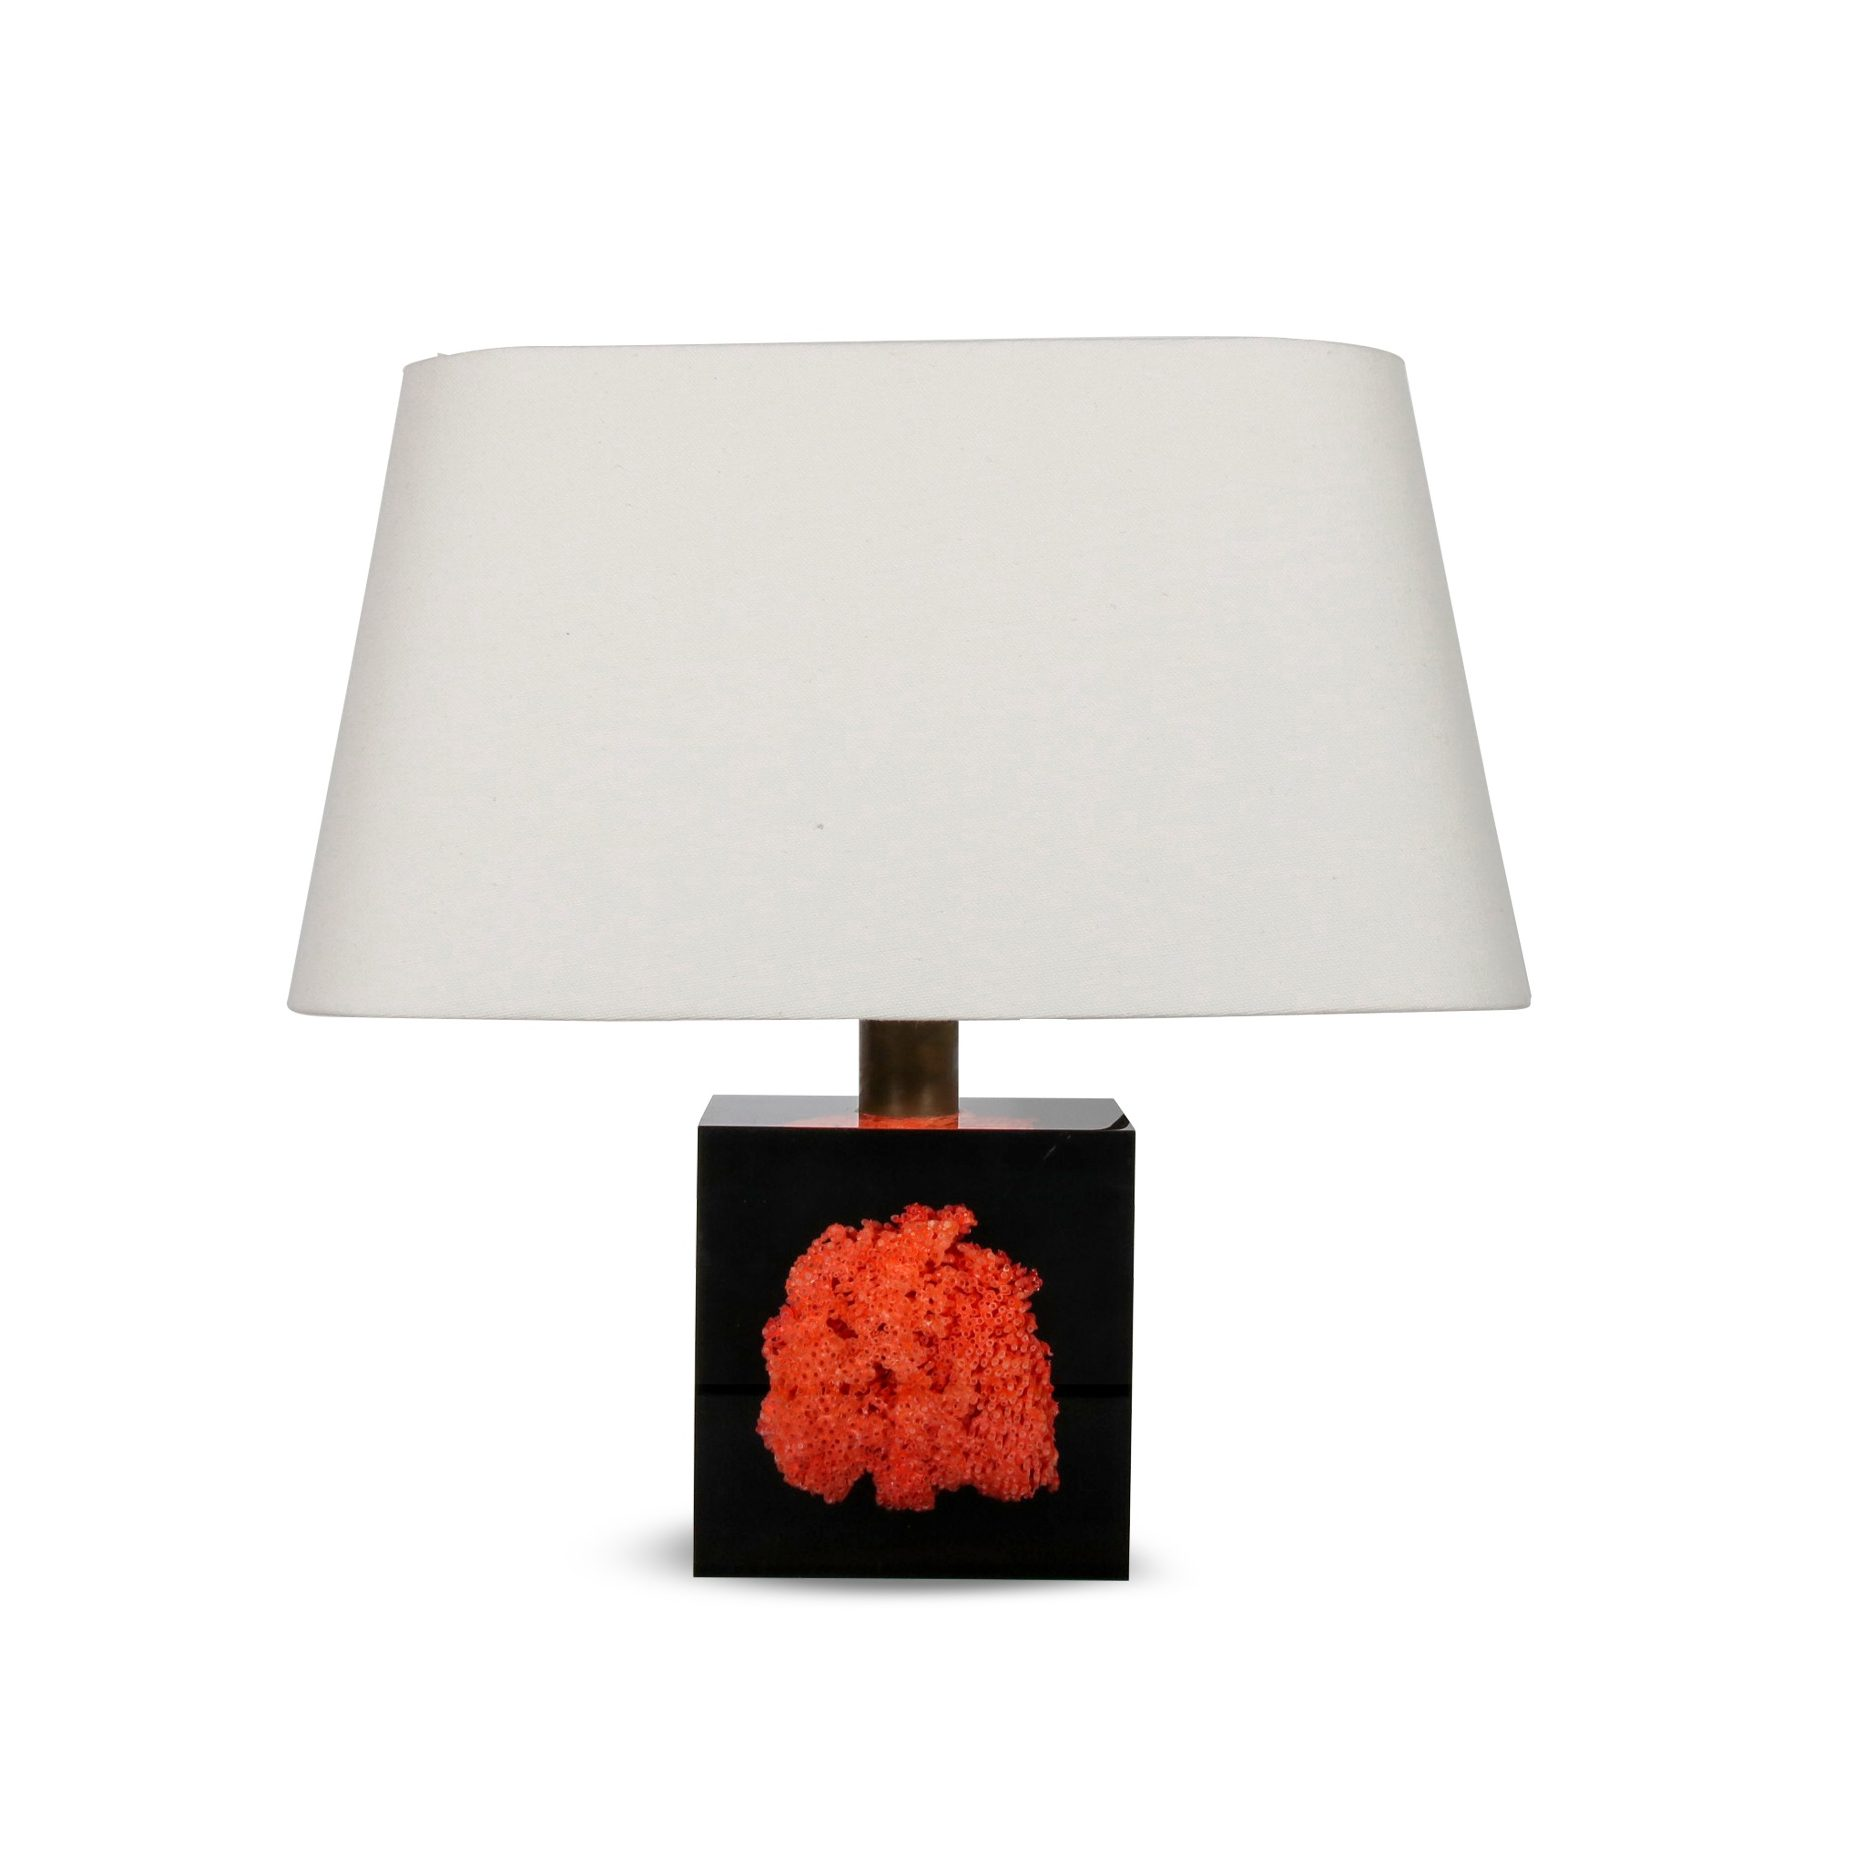 2003D110 L4405 Pierre Giraudon Resin with Coral Table Lamp, France 1970